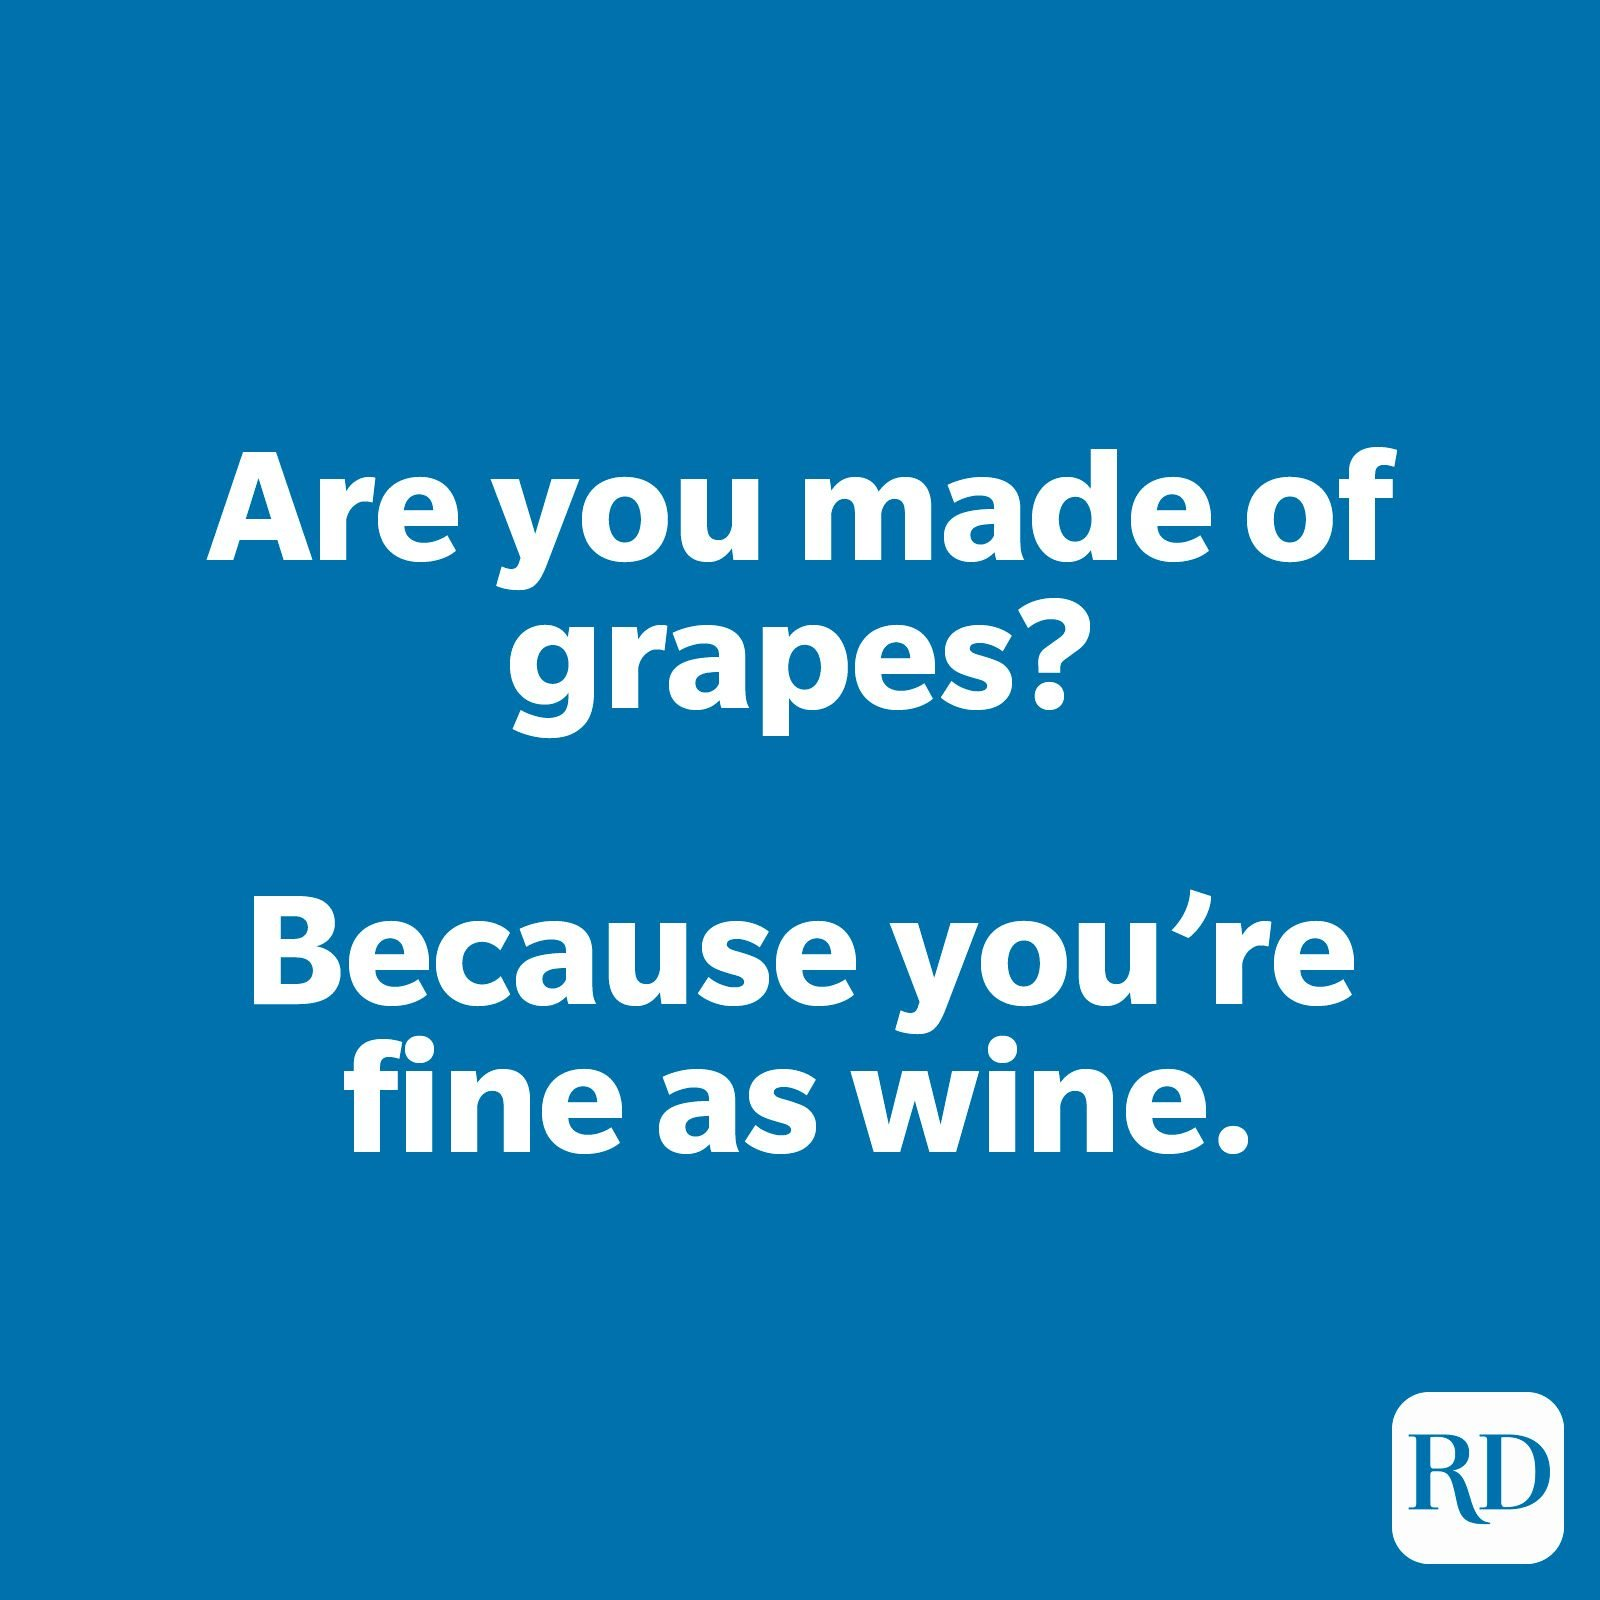 Are you made of grapes? Cause you're fine as wine.